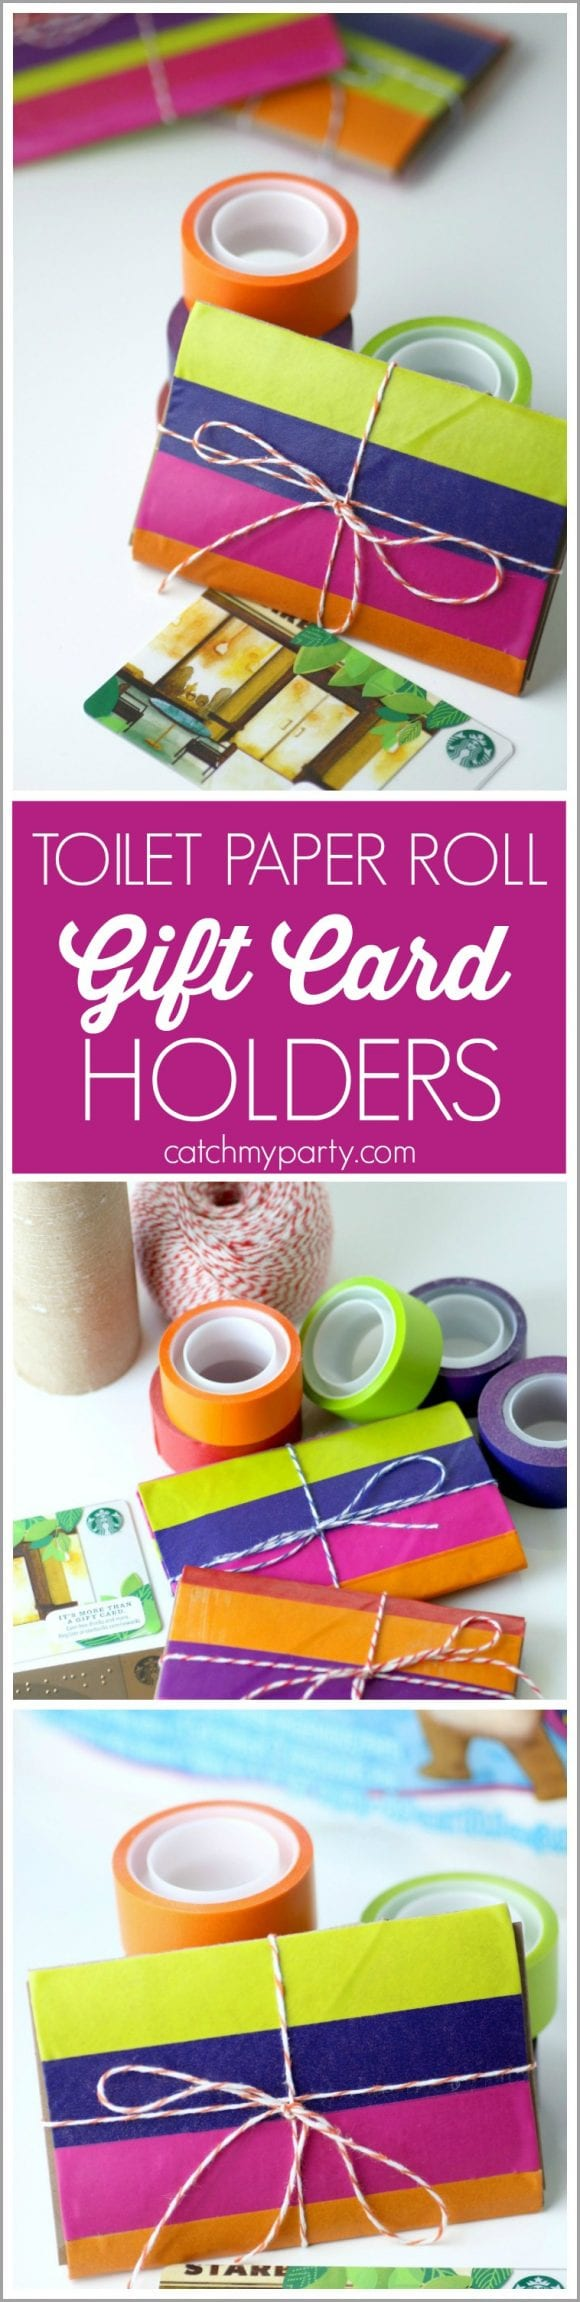 Toilet Paper Roll Gift Card Holders | CatchMyParty.com